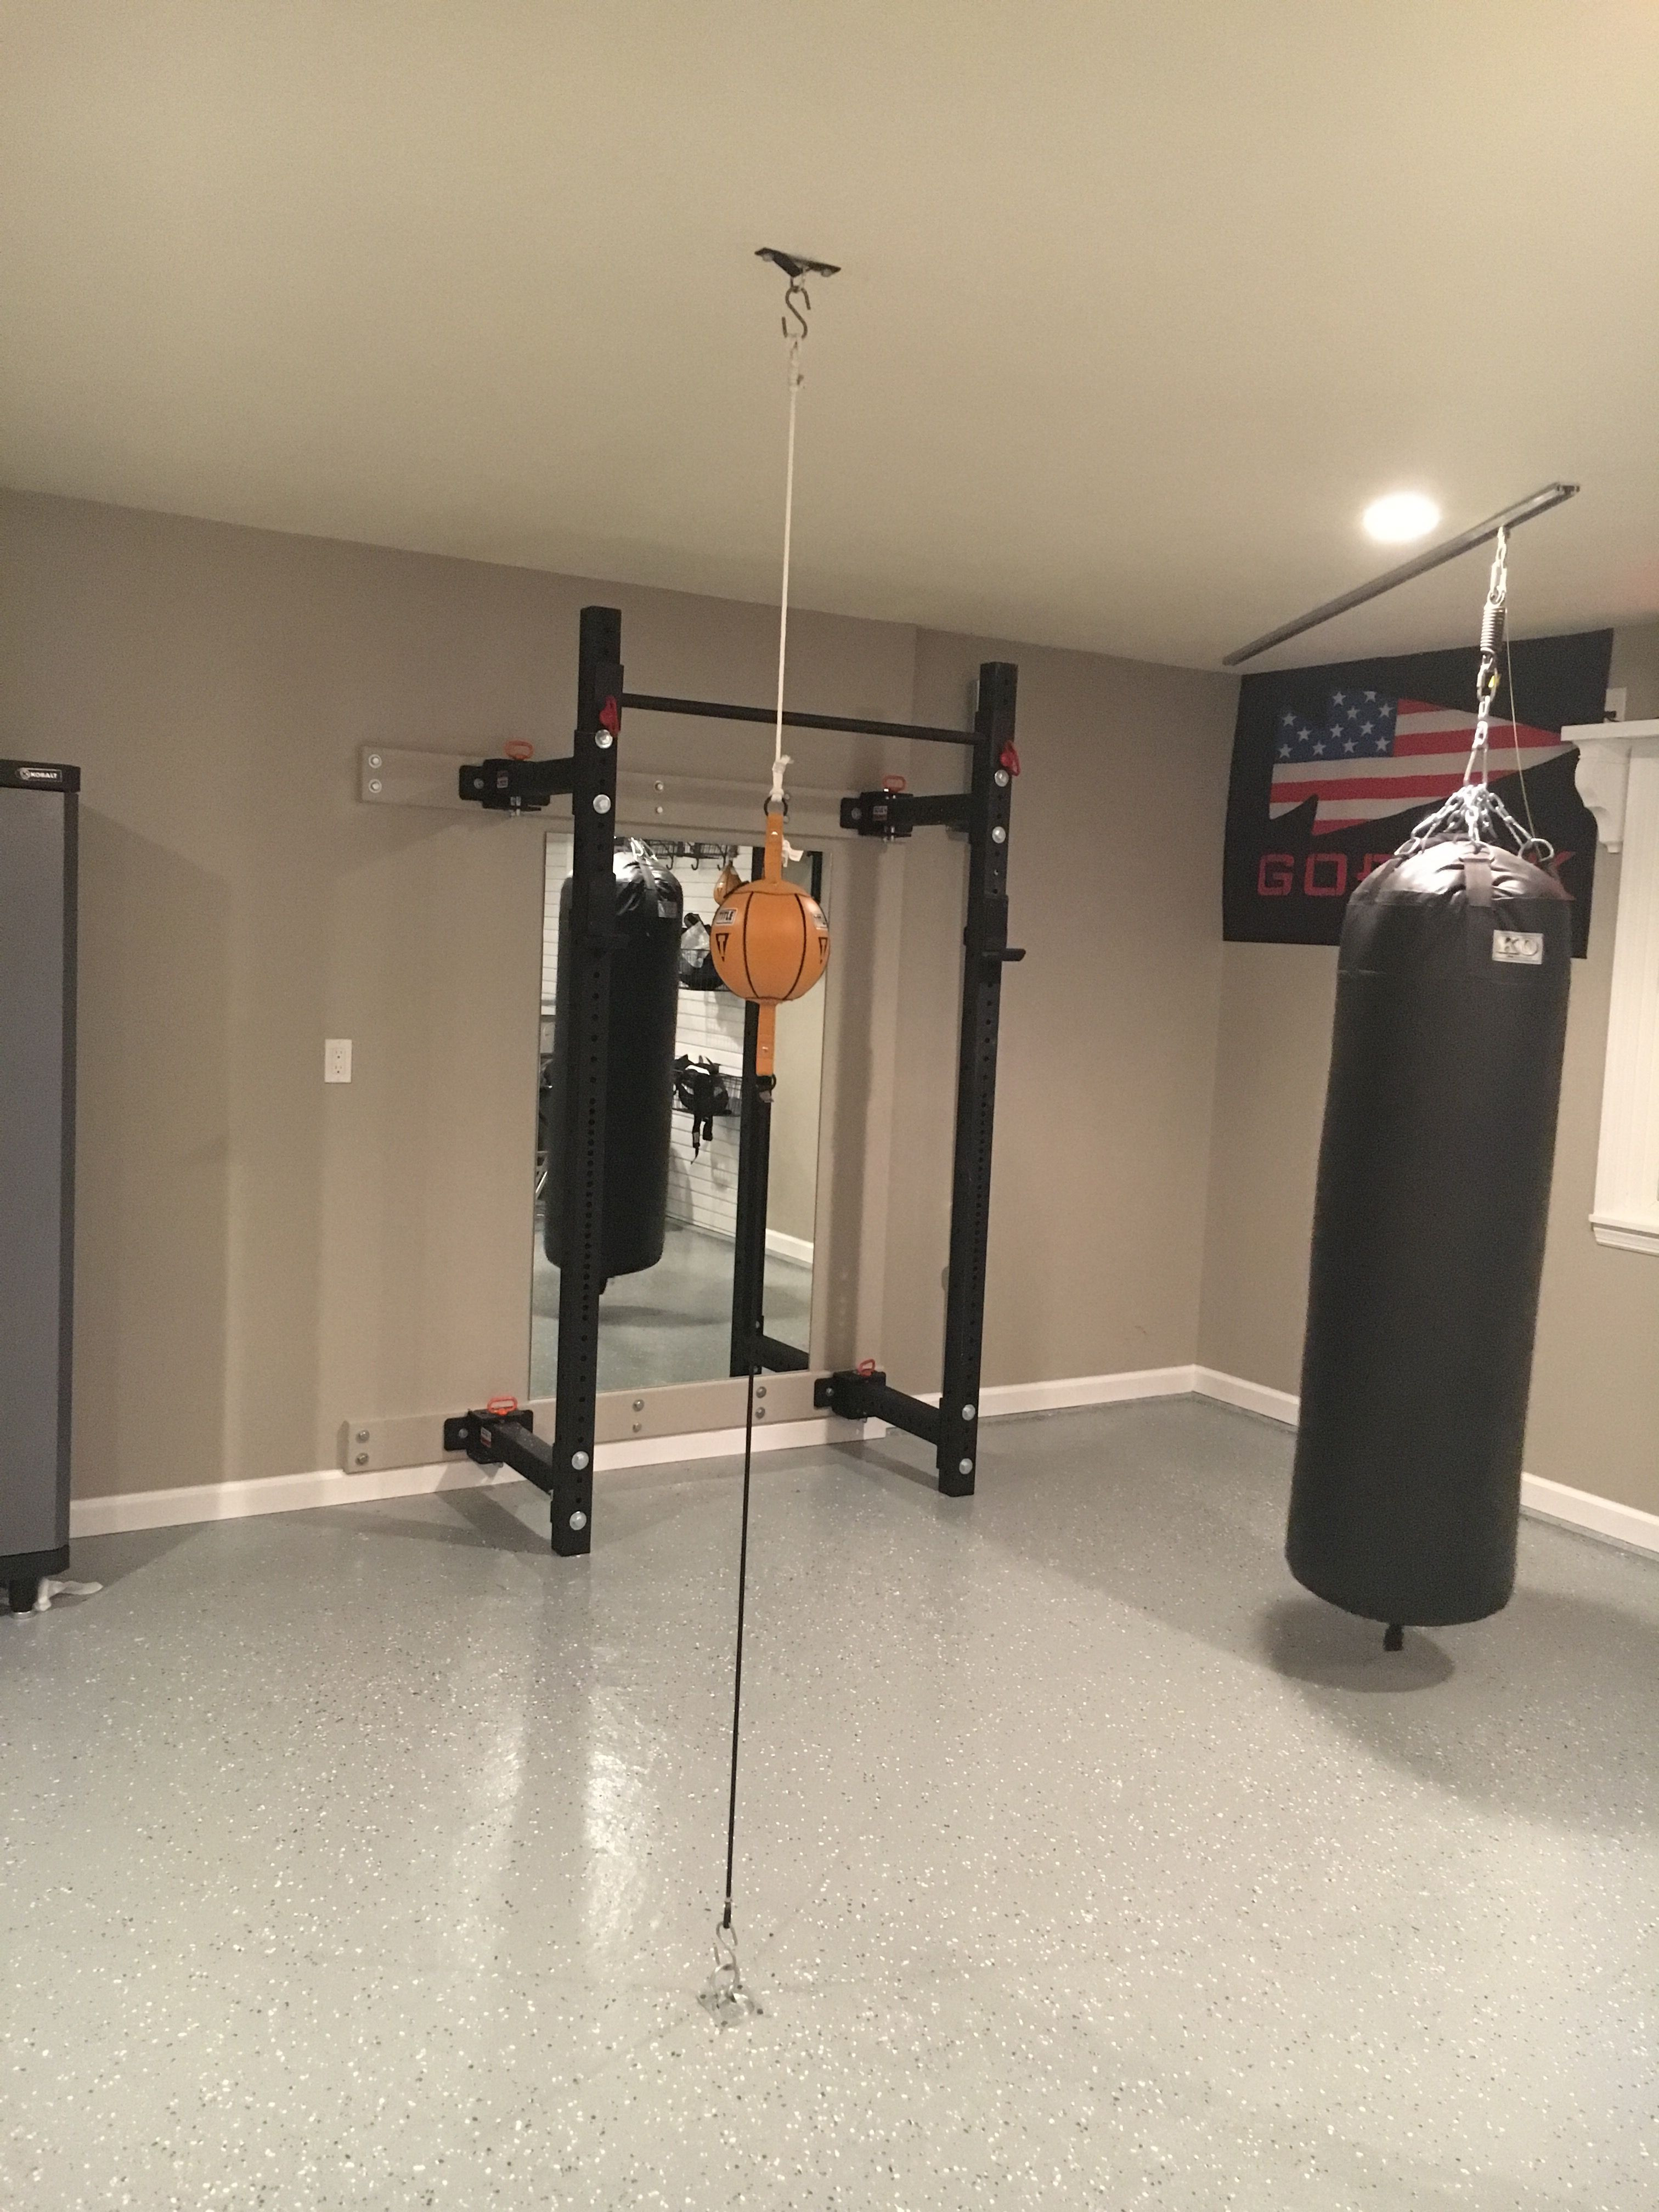 My lb heavy bag can slide flush into the corner pocket want